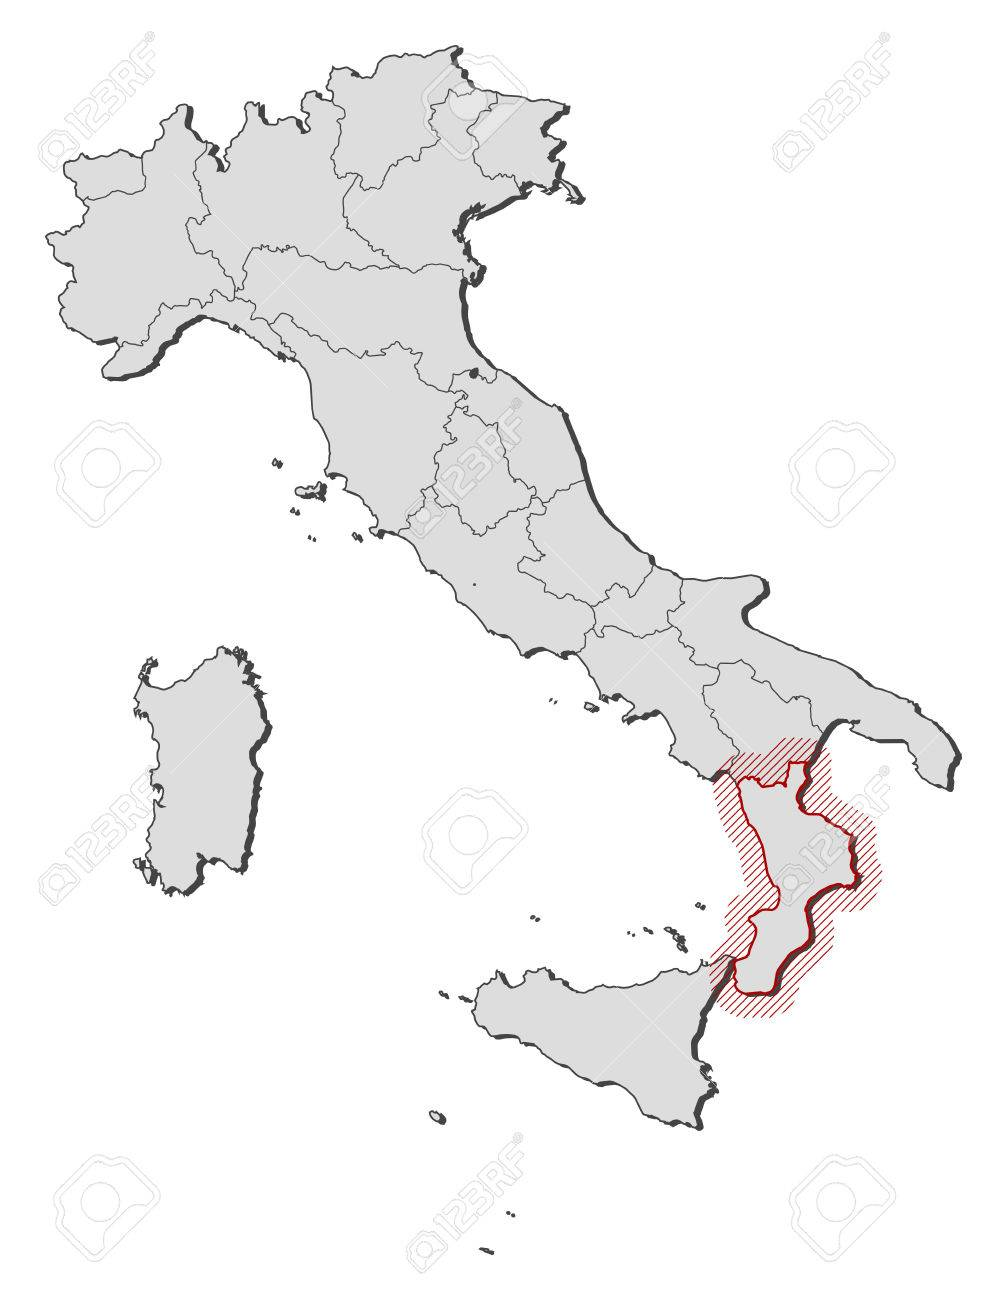 Map Of Italy With The Provinces Calabria Is Highlighted By A